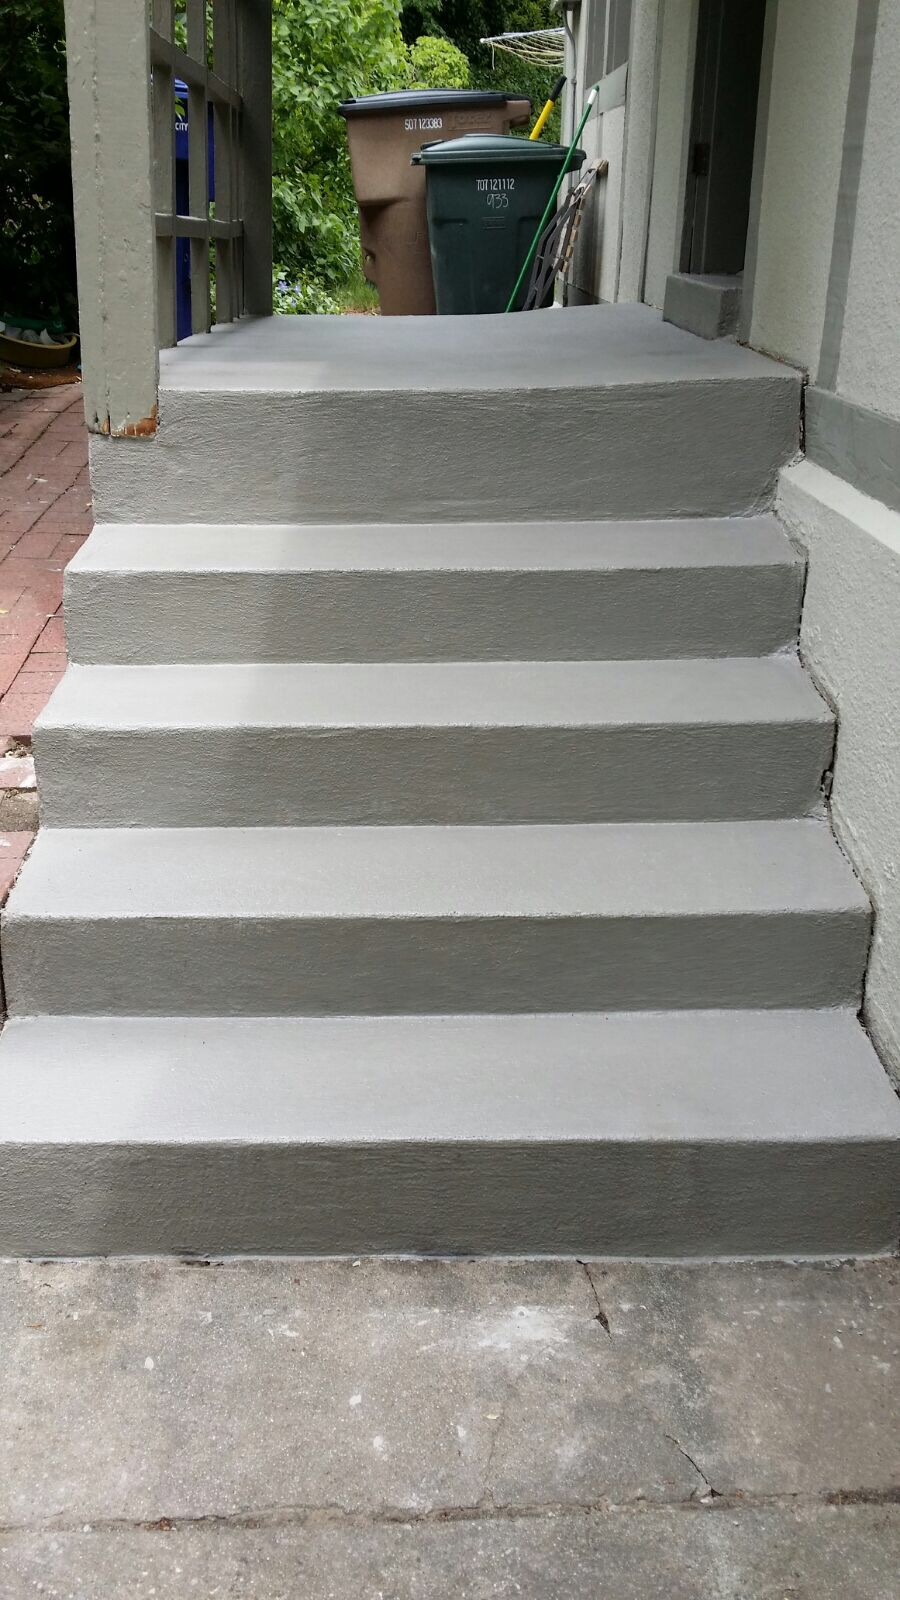 Concrete Stairs After Resurfacing